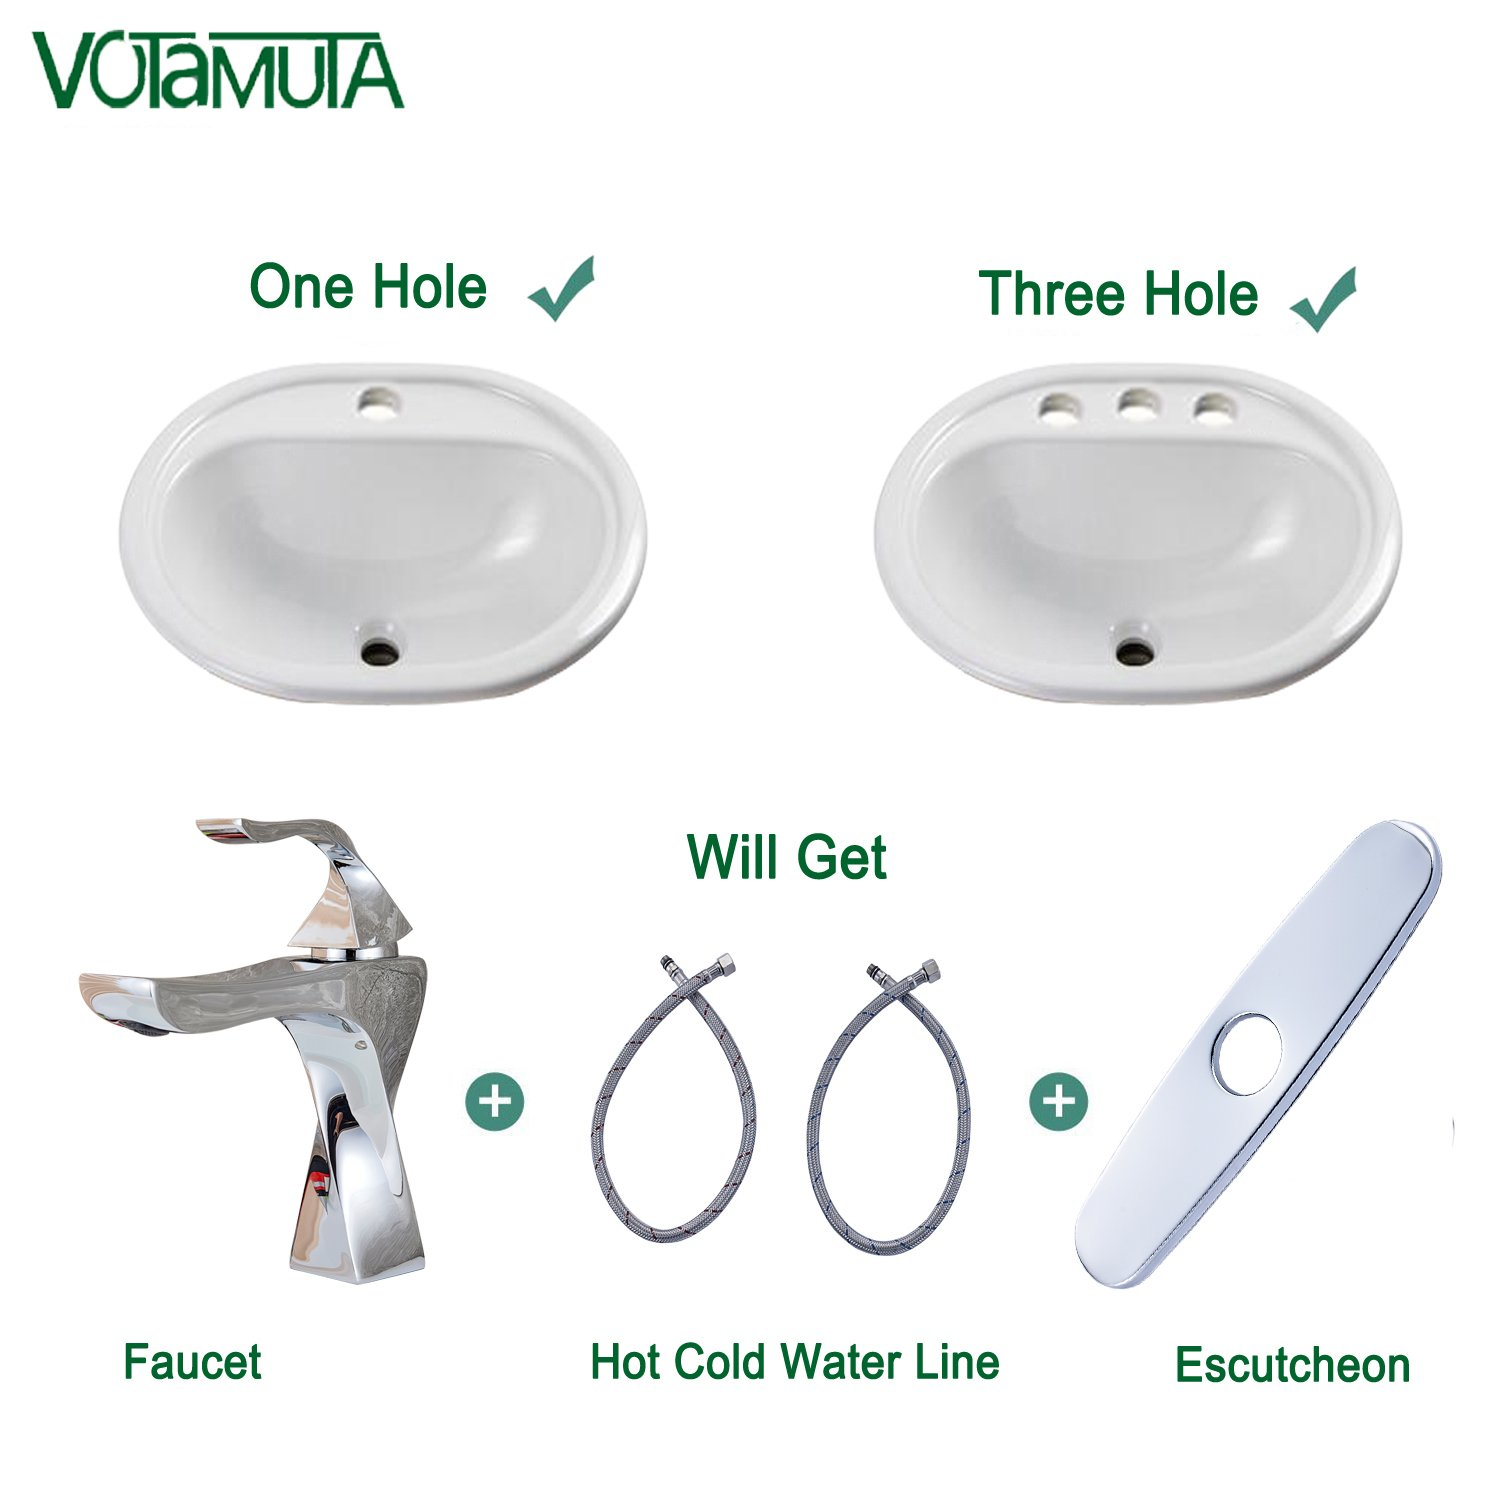 Votamuta Waterfall Spout Single Handle Bathroom Sink Vessel Faucet Mixer Tap Lavatory Faucets Tall Body Brushed Nickel with Pop Up Drain VO080102